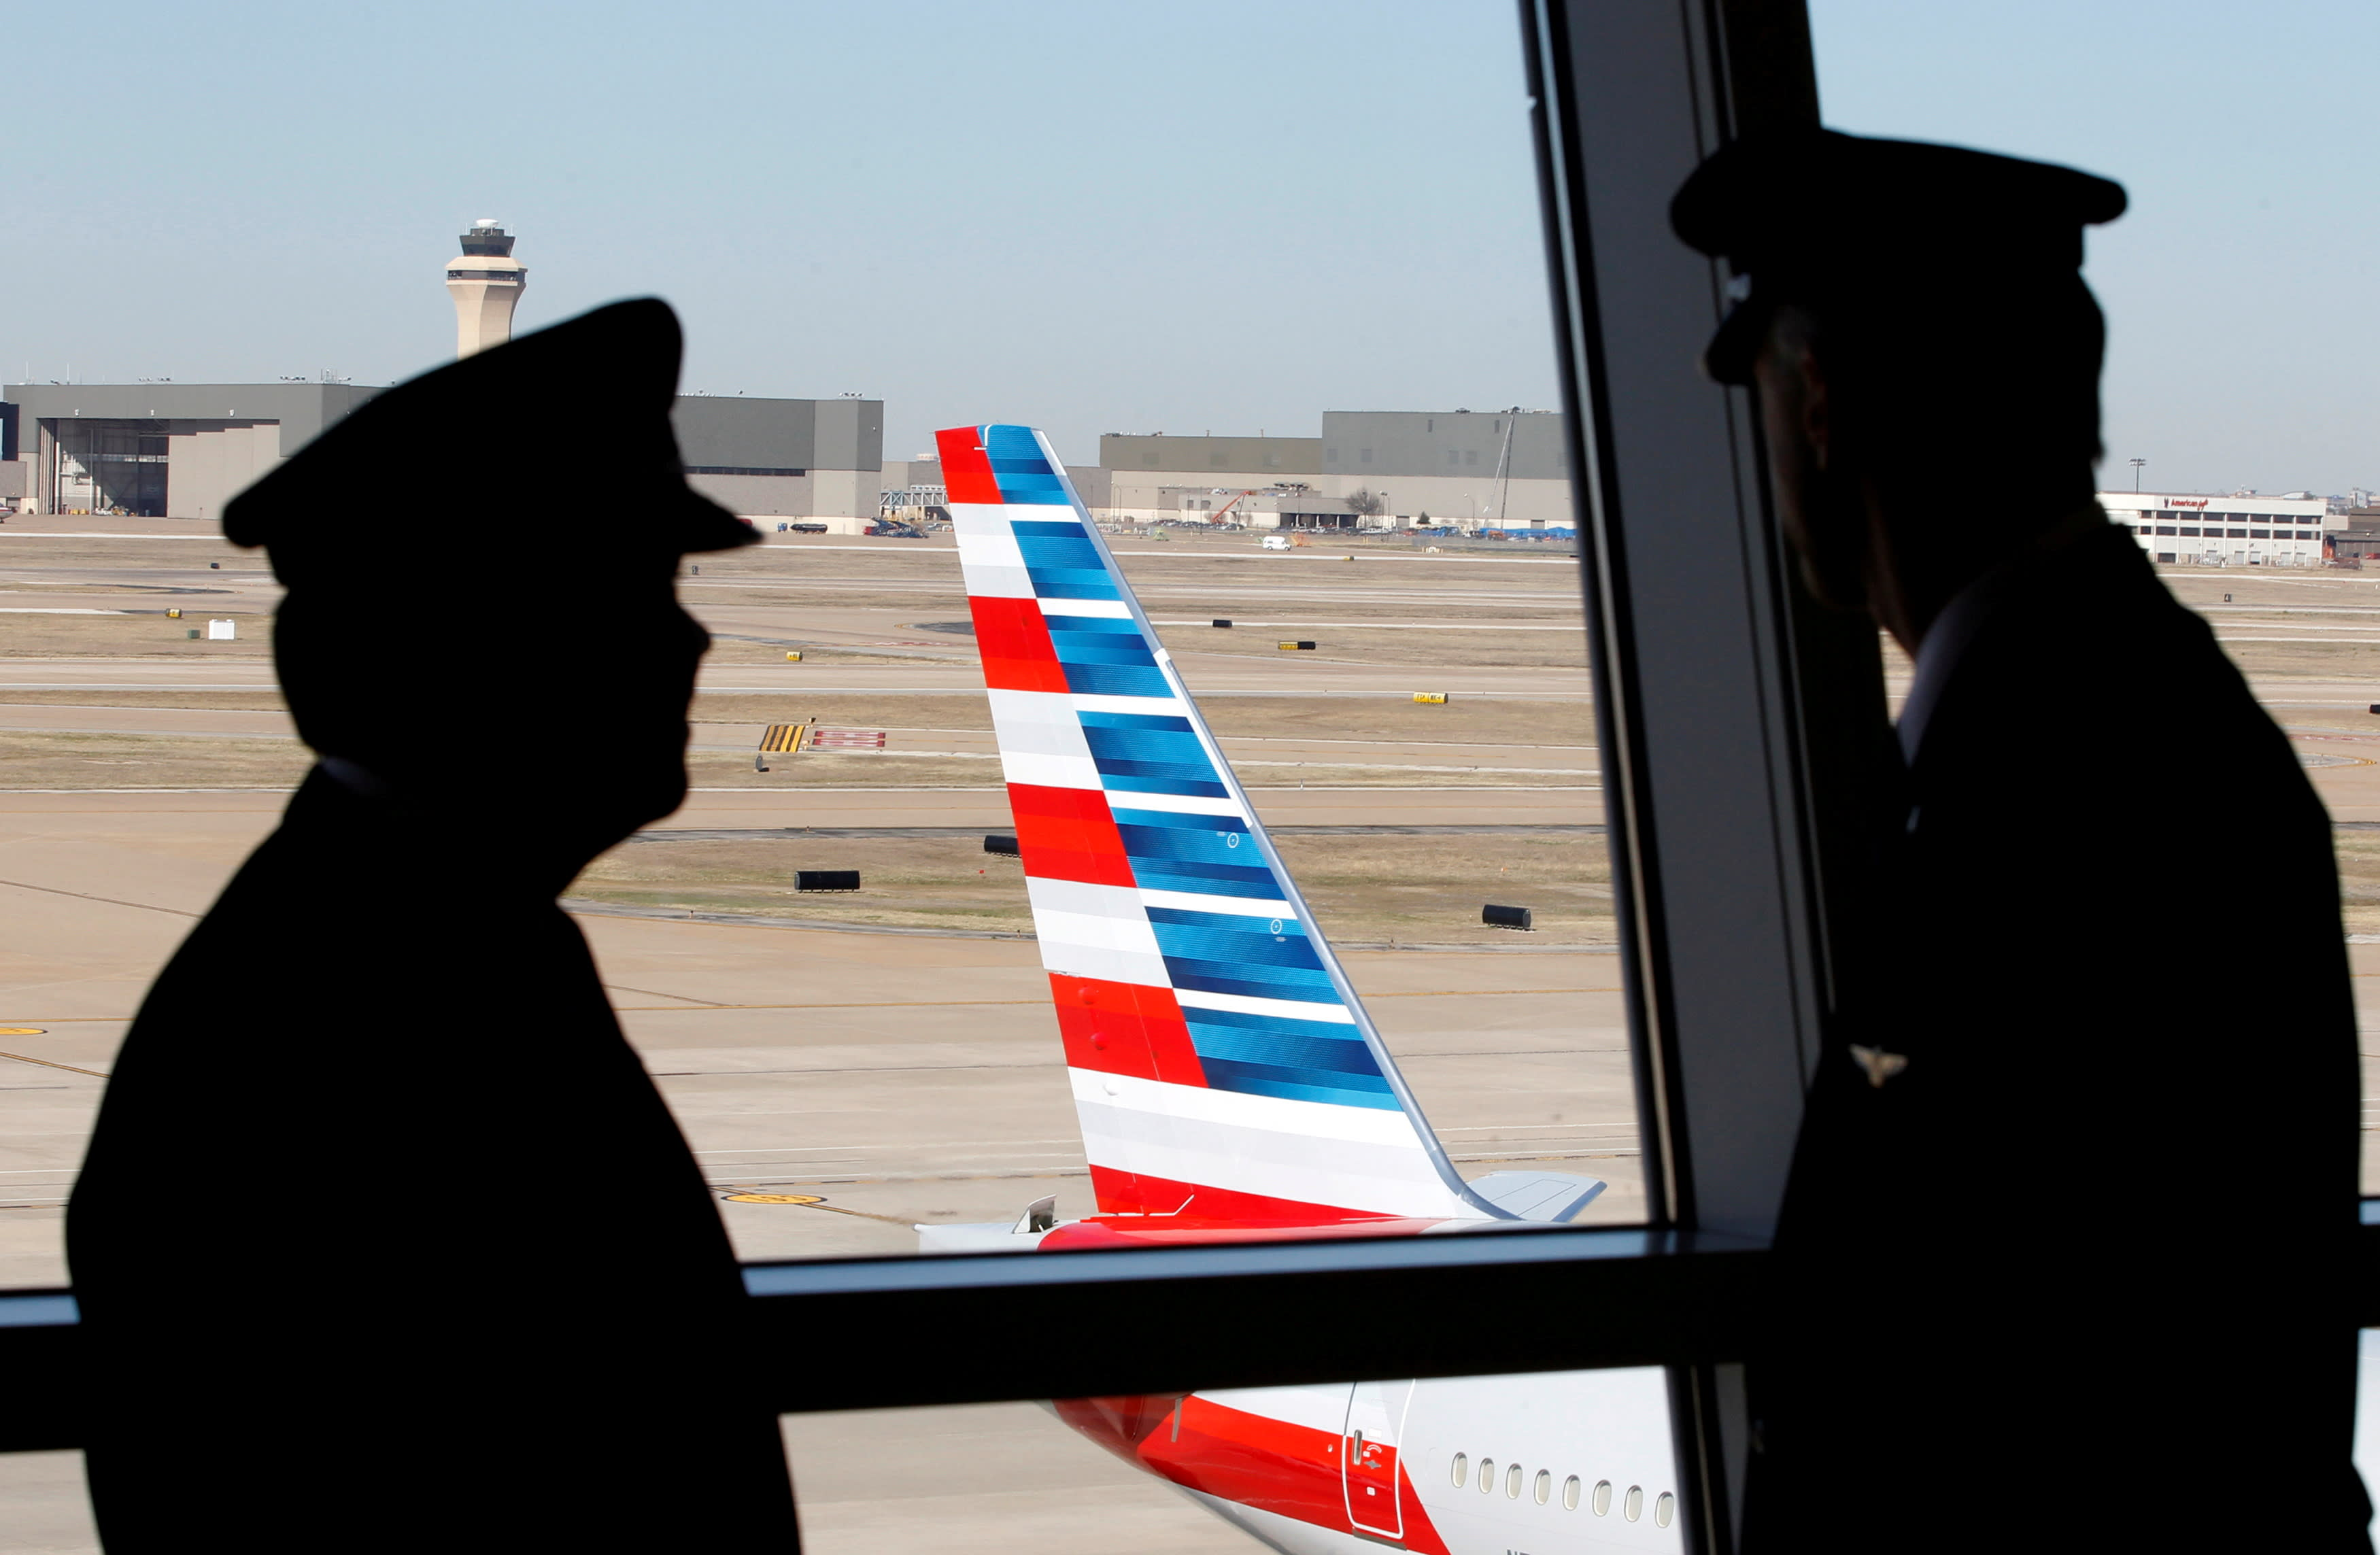 American Airlines pilots want managers replaced over flight disruptions